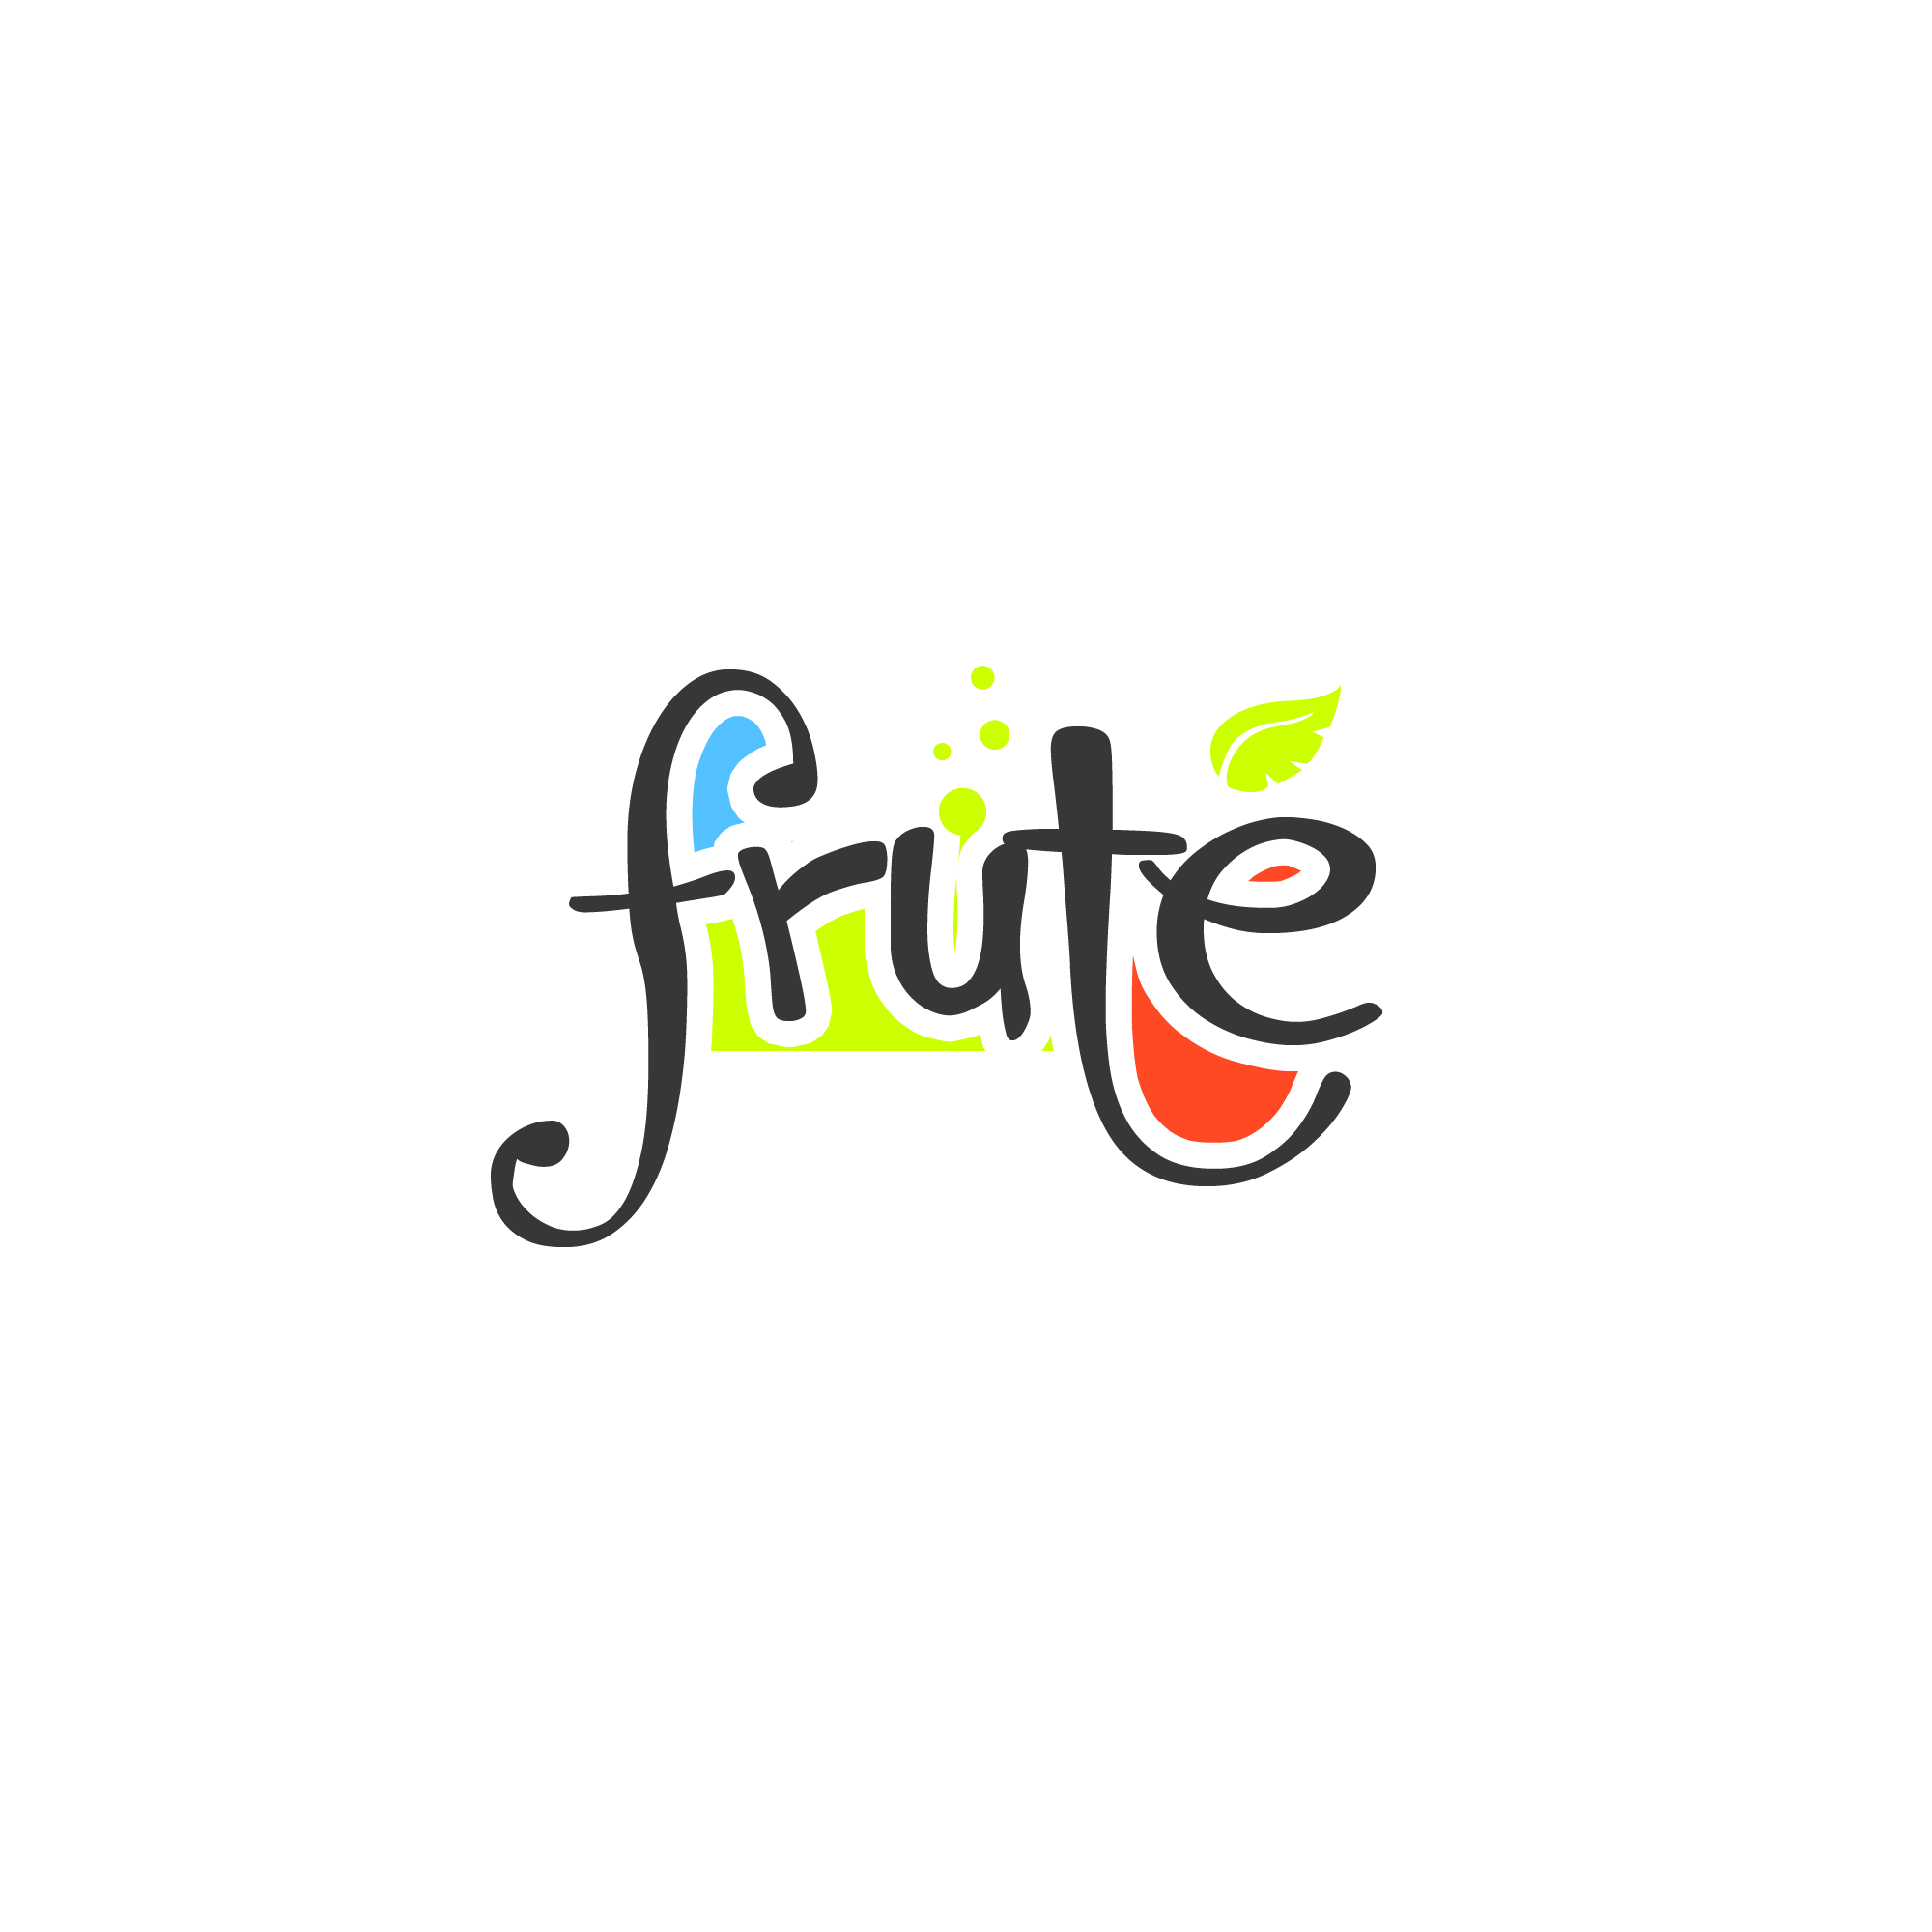 Logo Design by Kenneth Joel - Entry No. 44 in the Logo Design Contest Imaginative Logo Design for Fruté.